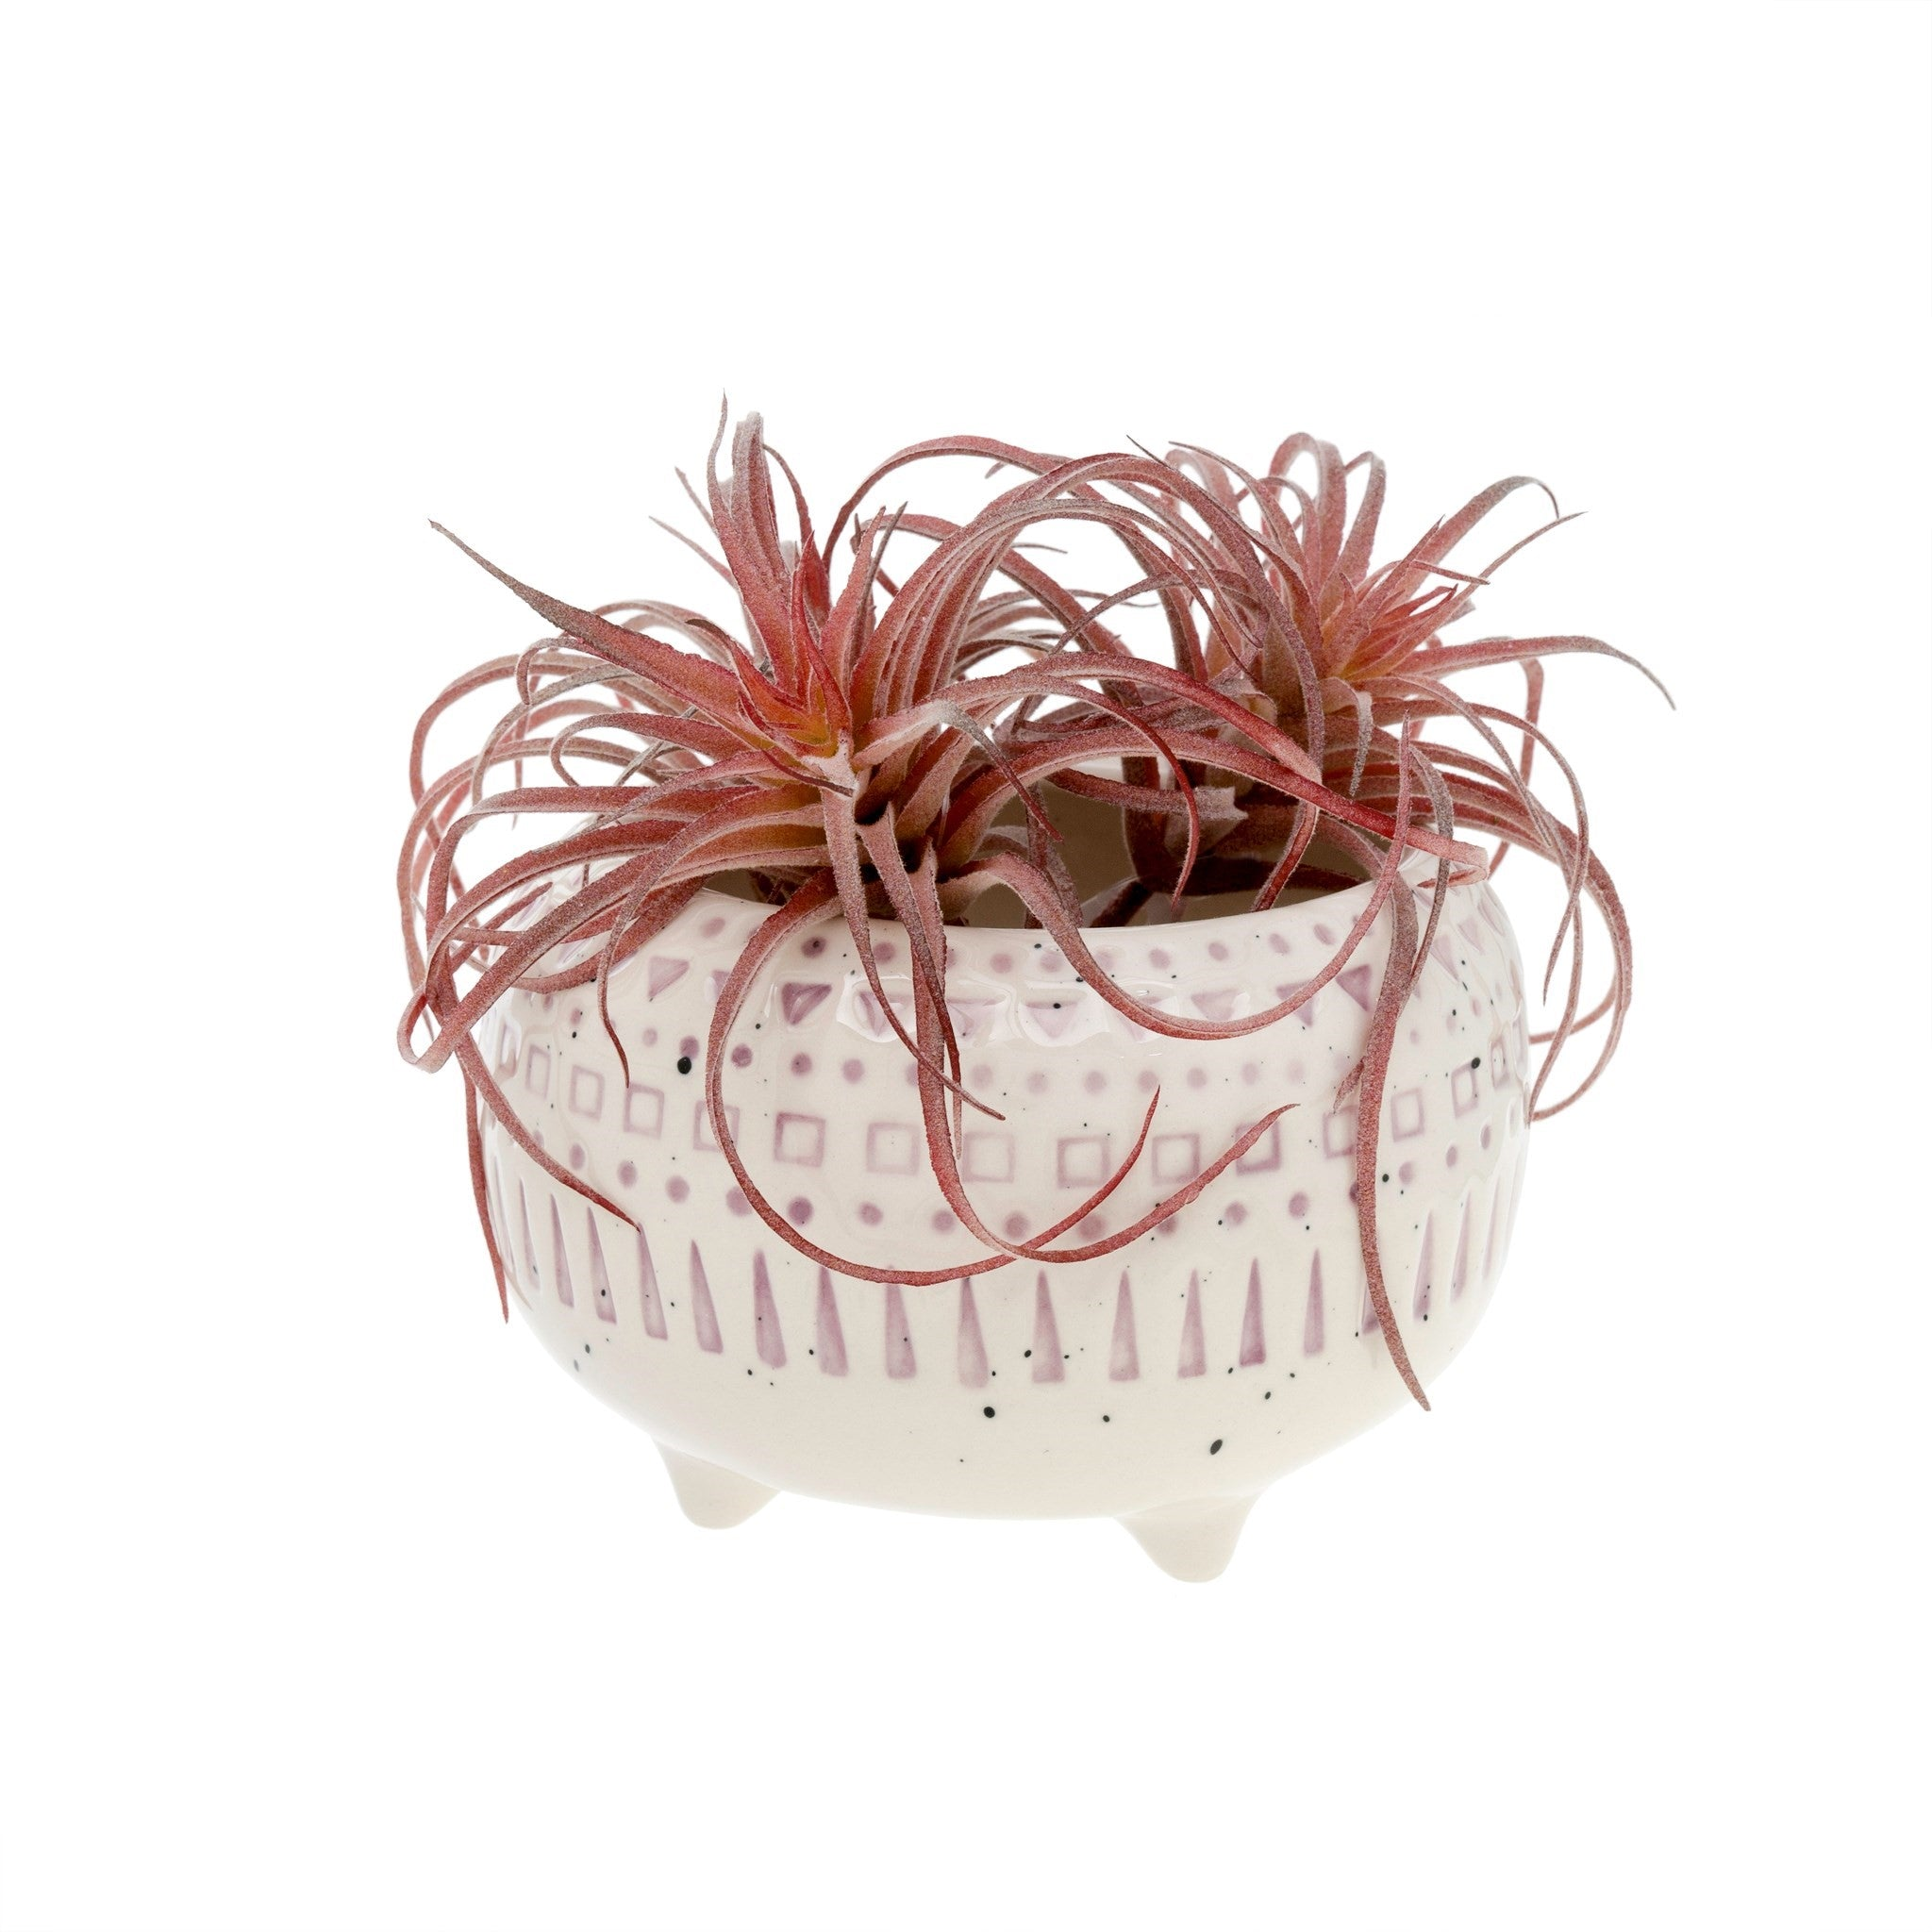 Indaba Trading Co Florentine Bowl Air Plants